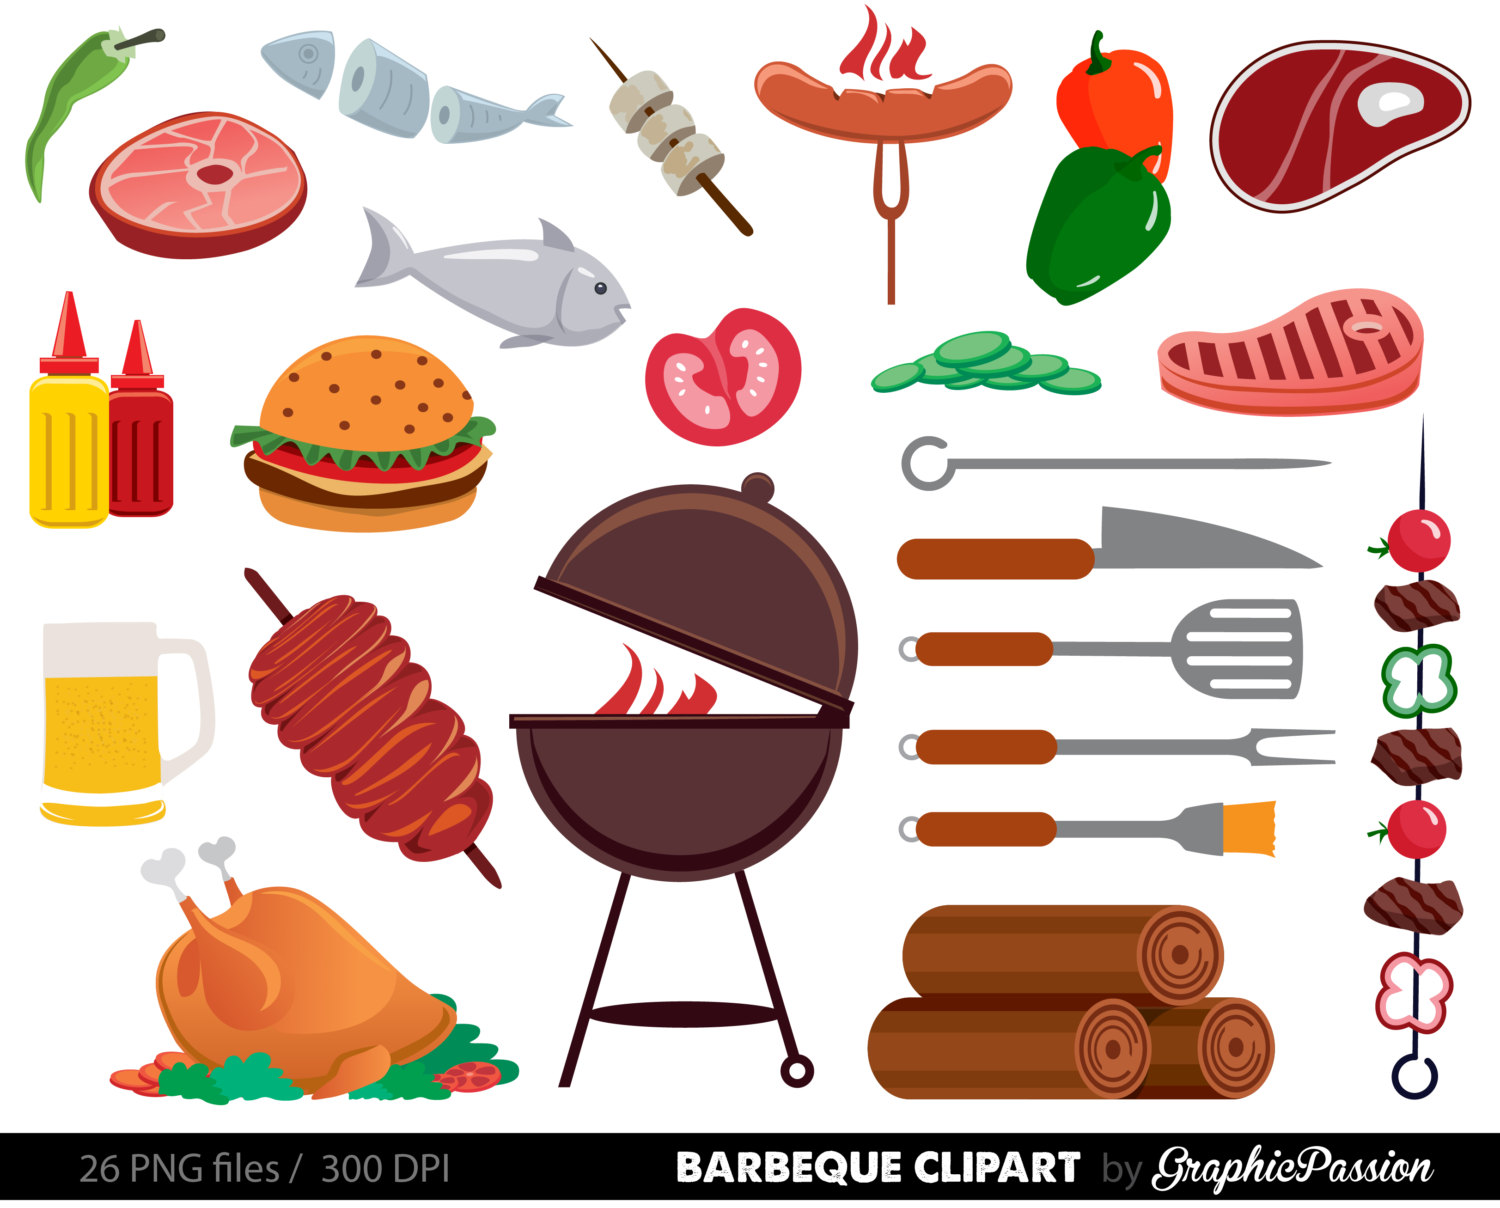 Bbq cookout barbeque party. Barbecue clipart clip art